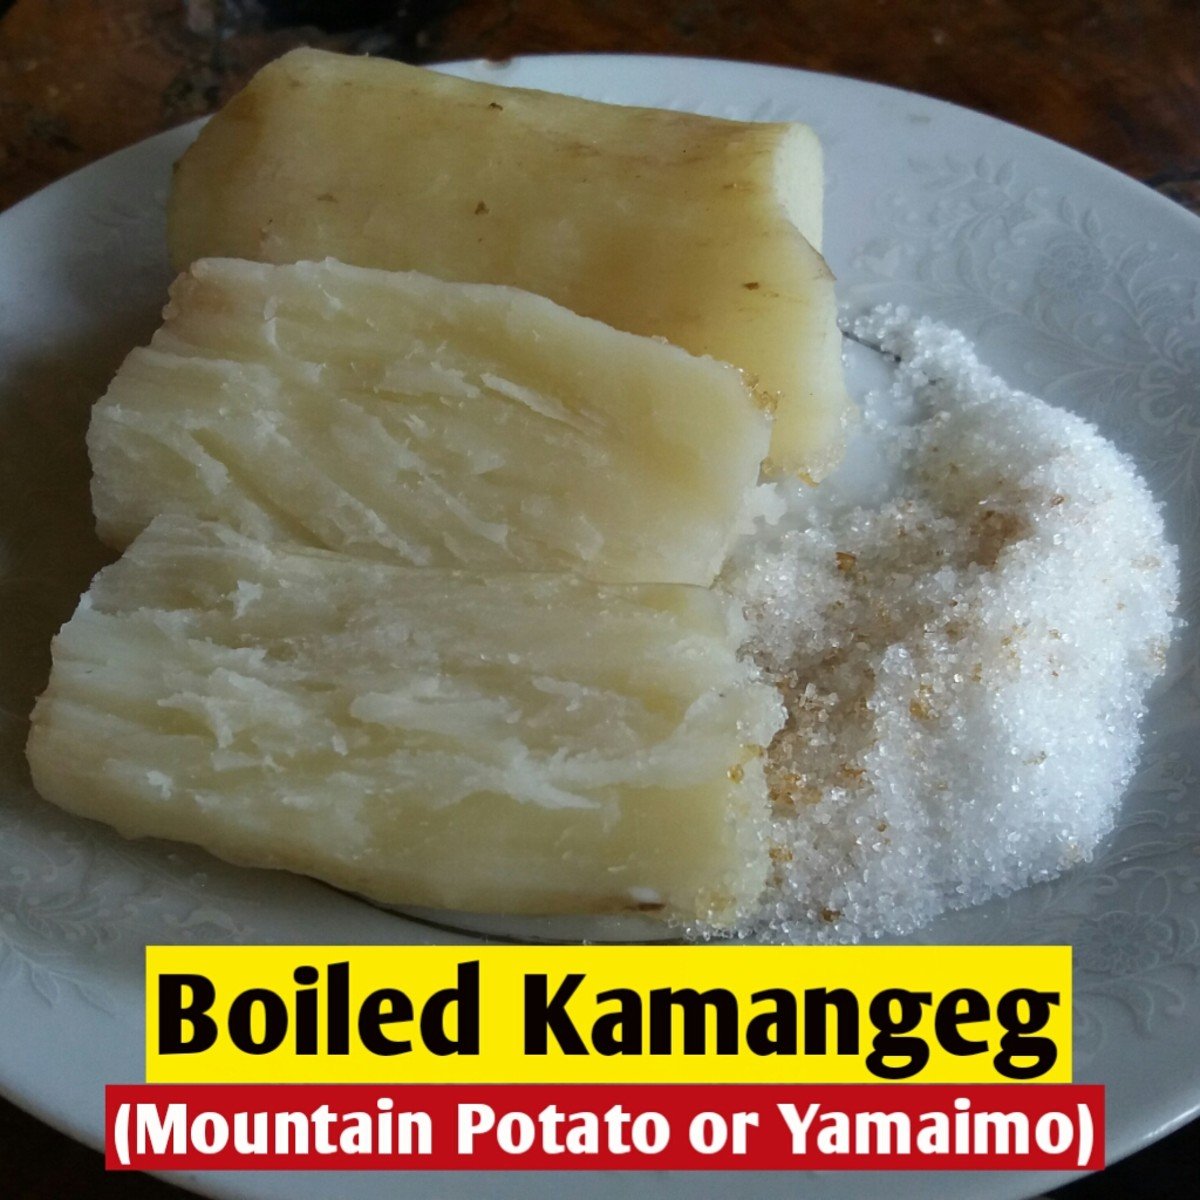 Boiled kamangeg, also known as mountain potato or yamaimo, is a tasty snack.